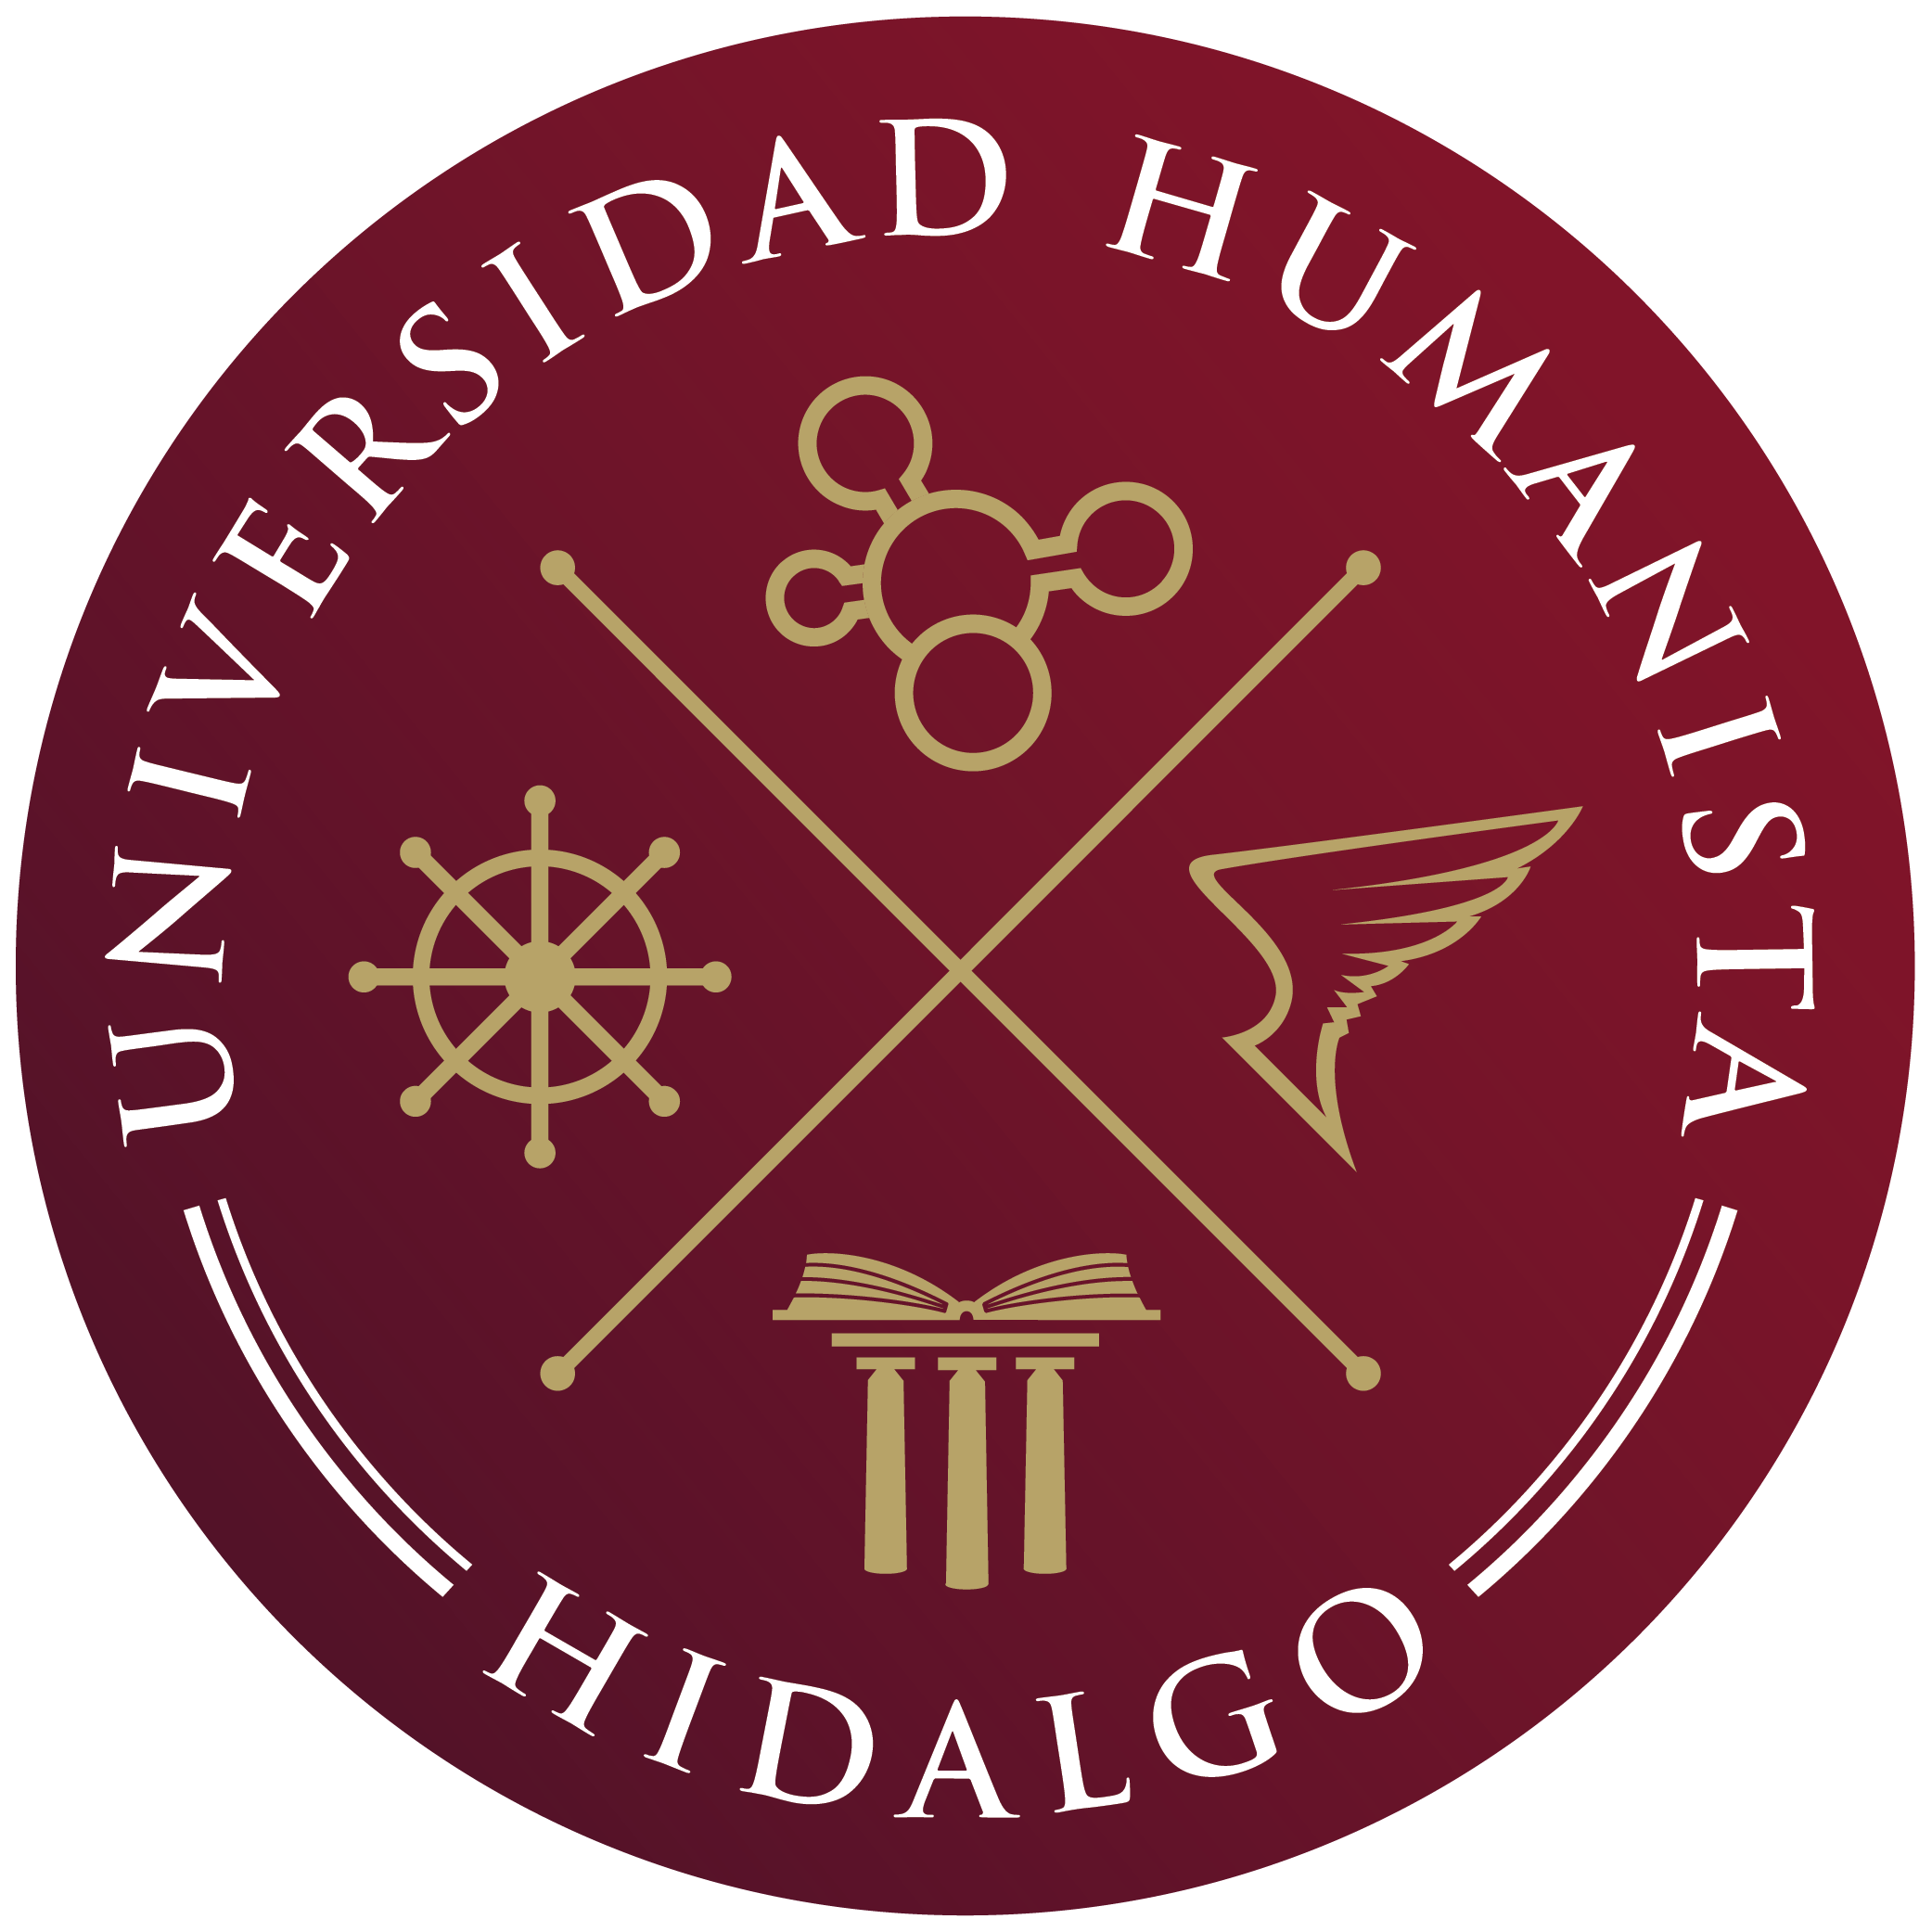 Universidad Humanista de Hidalgo